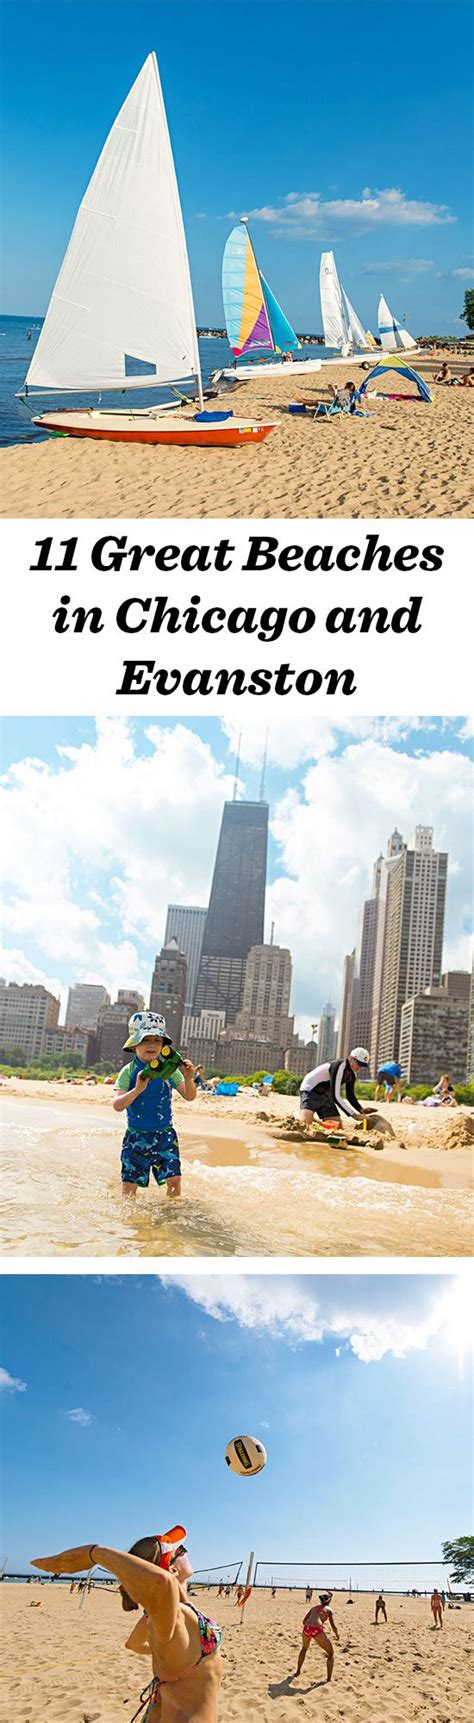 11 great beaches in chicago and evanston illinois travel